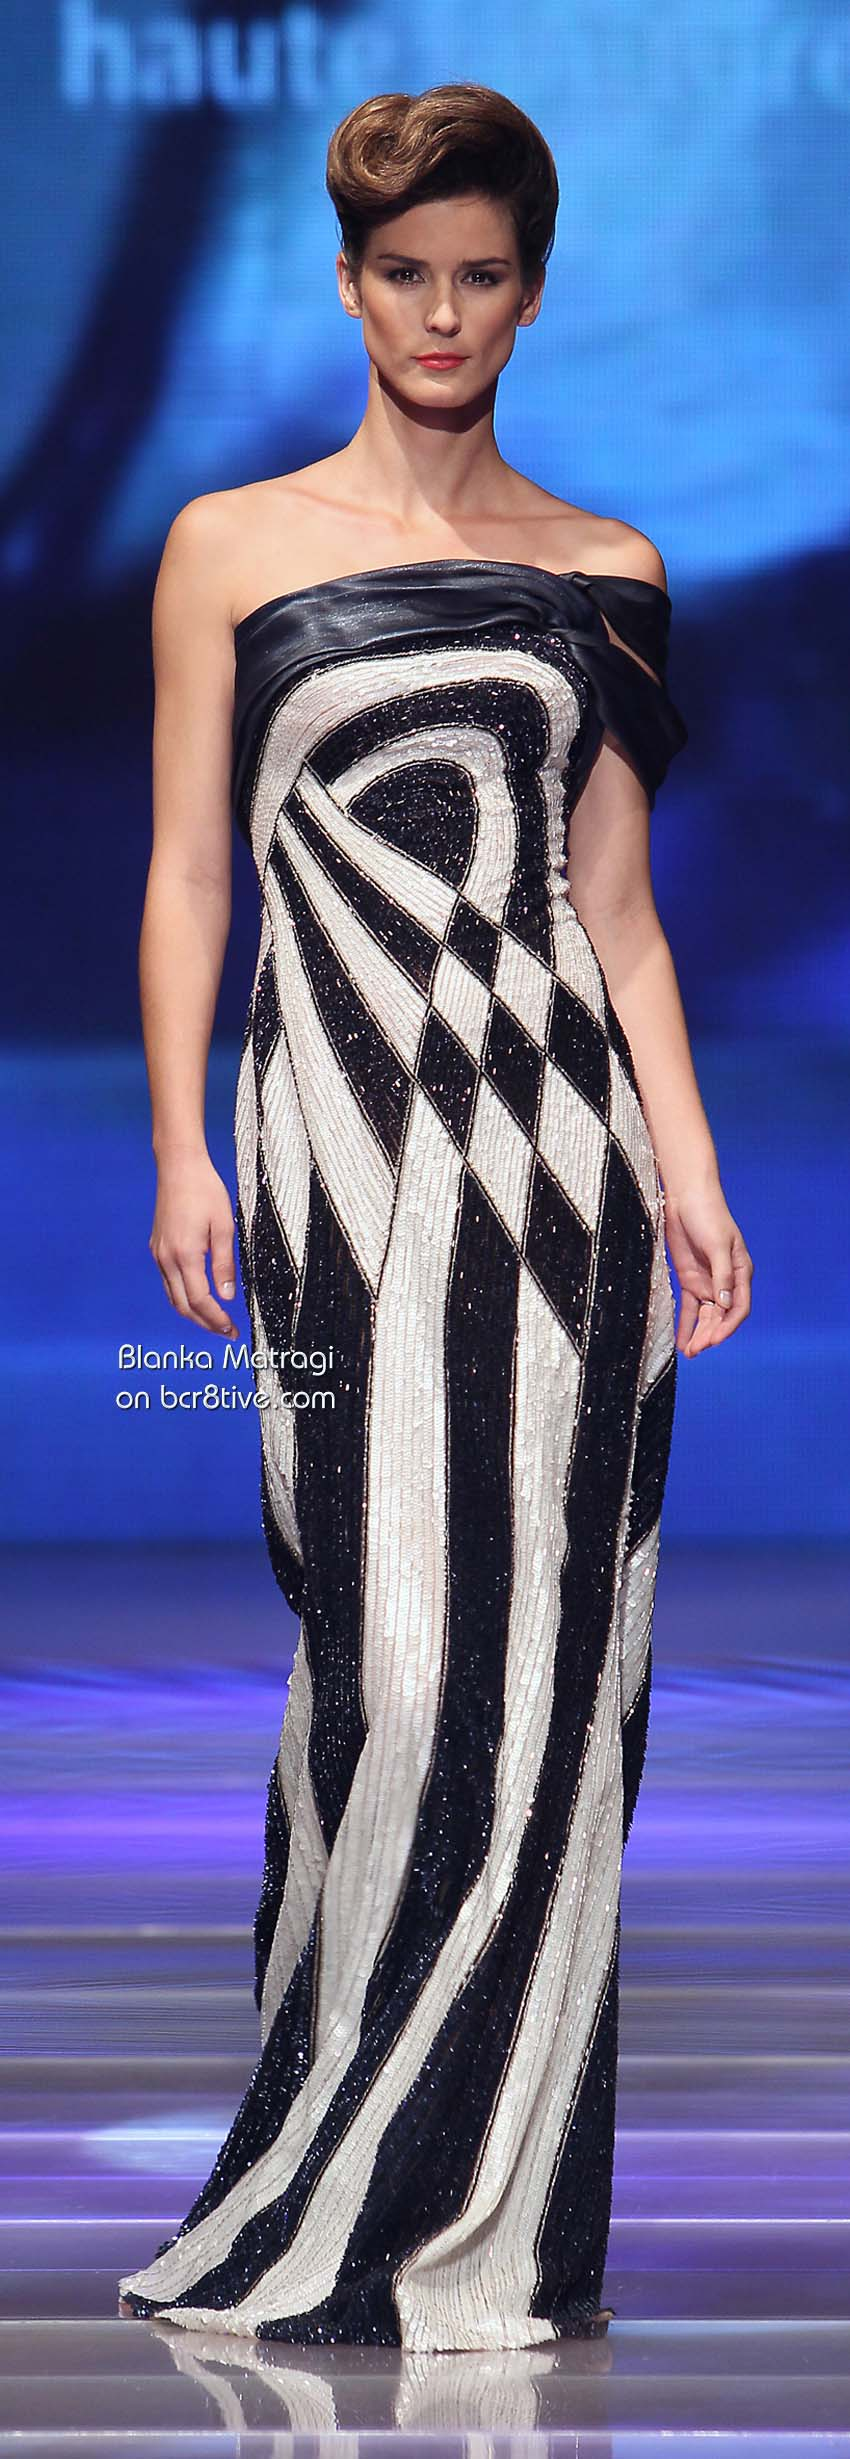 Blanka Matragi 30th Anniversary Runway Collection